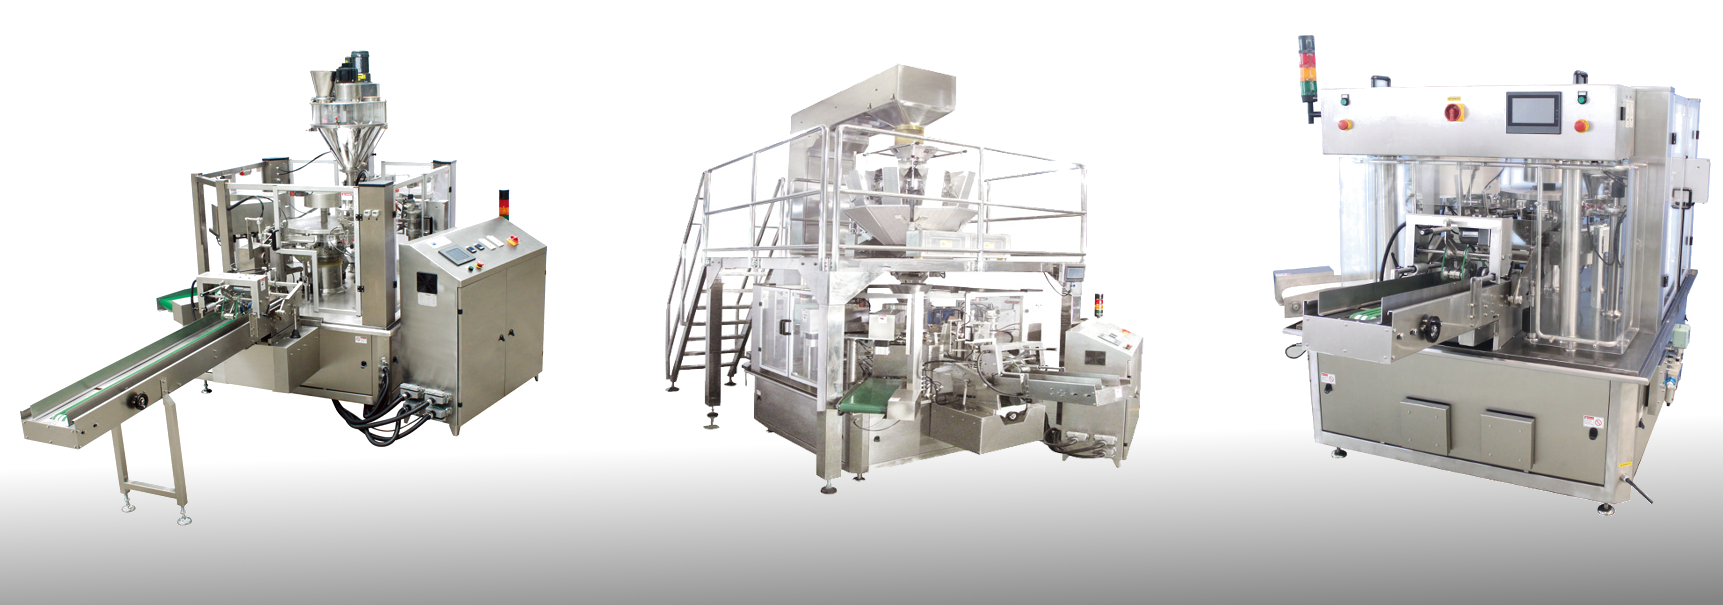 Rotating Doypack Filling and Capping Machine for Stand-up Pouches